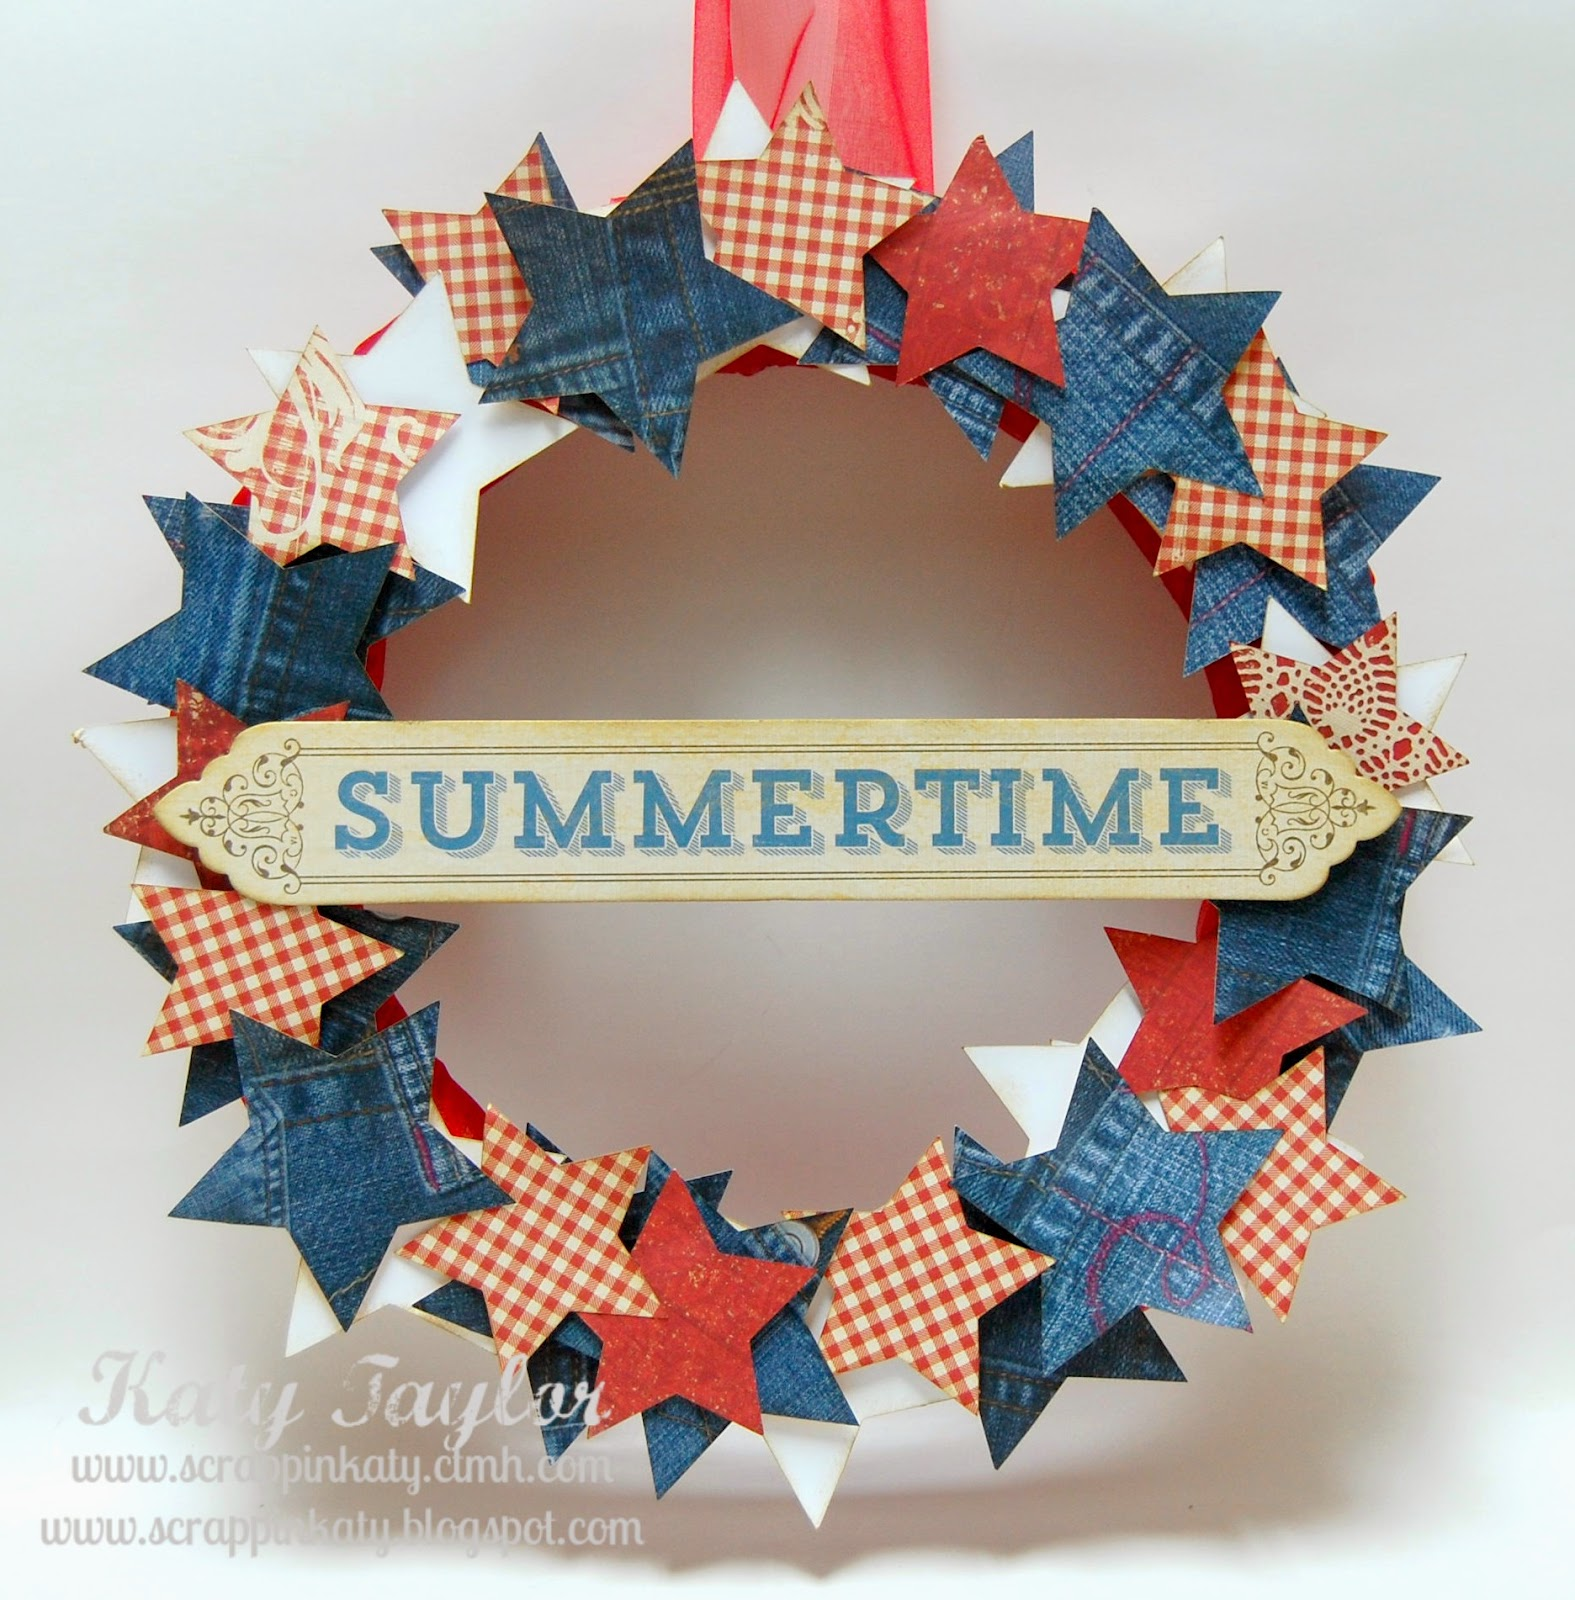 Summertime Wreath on Diane's Vintage Zest!